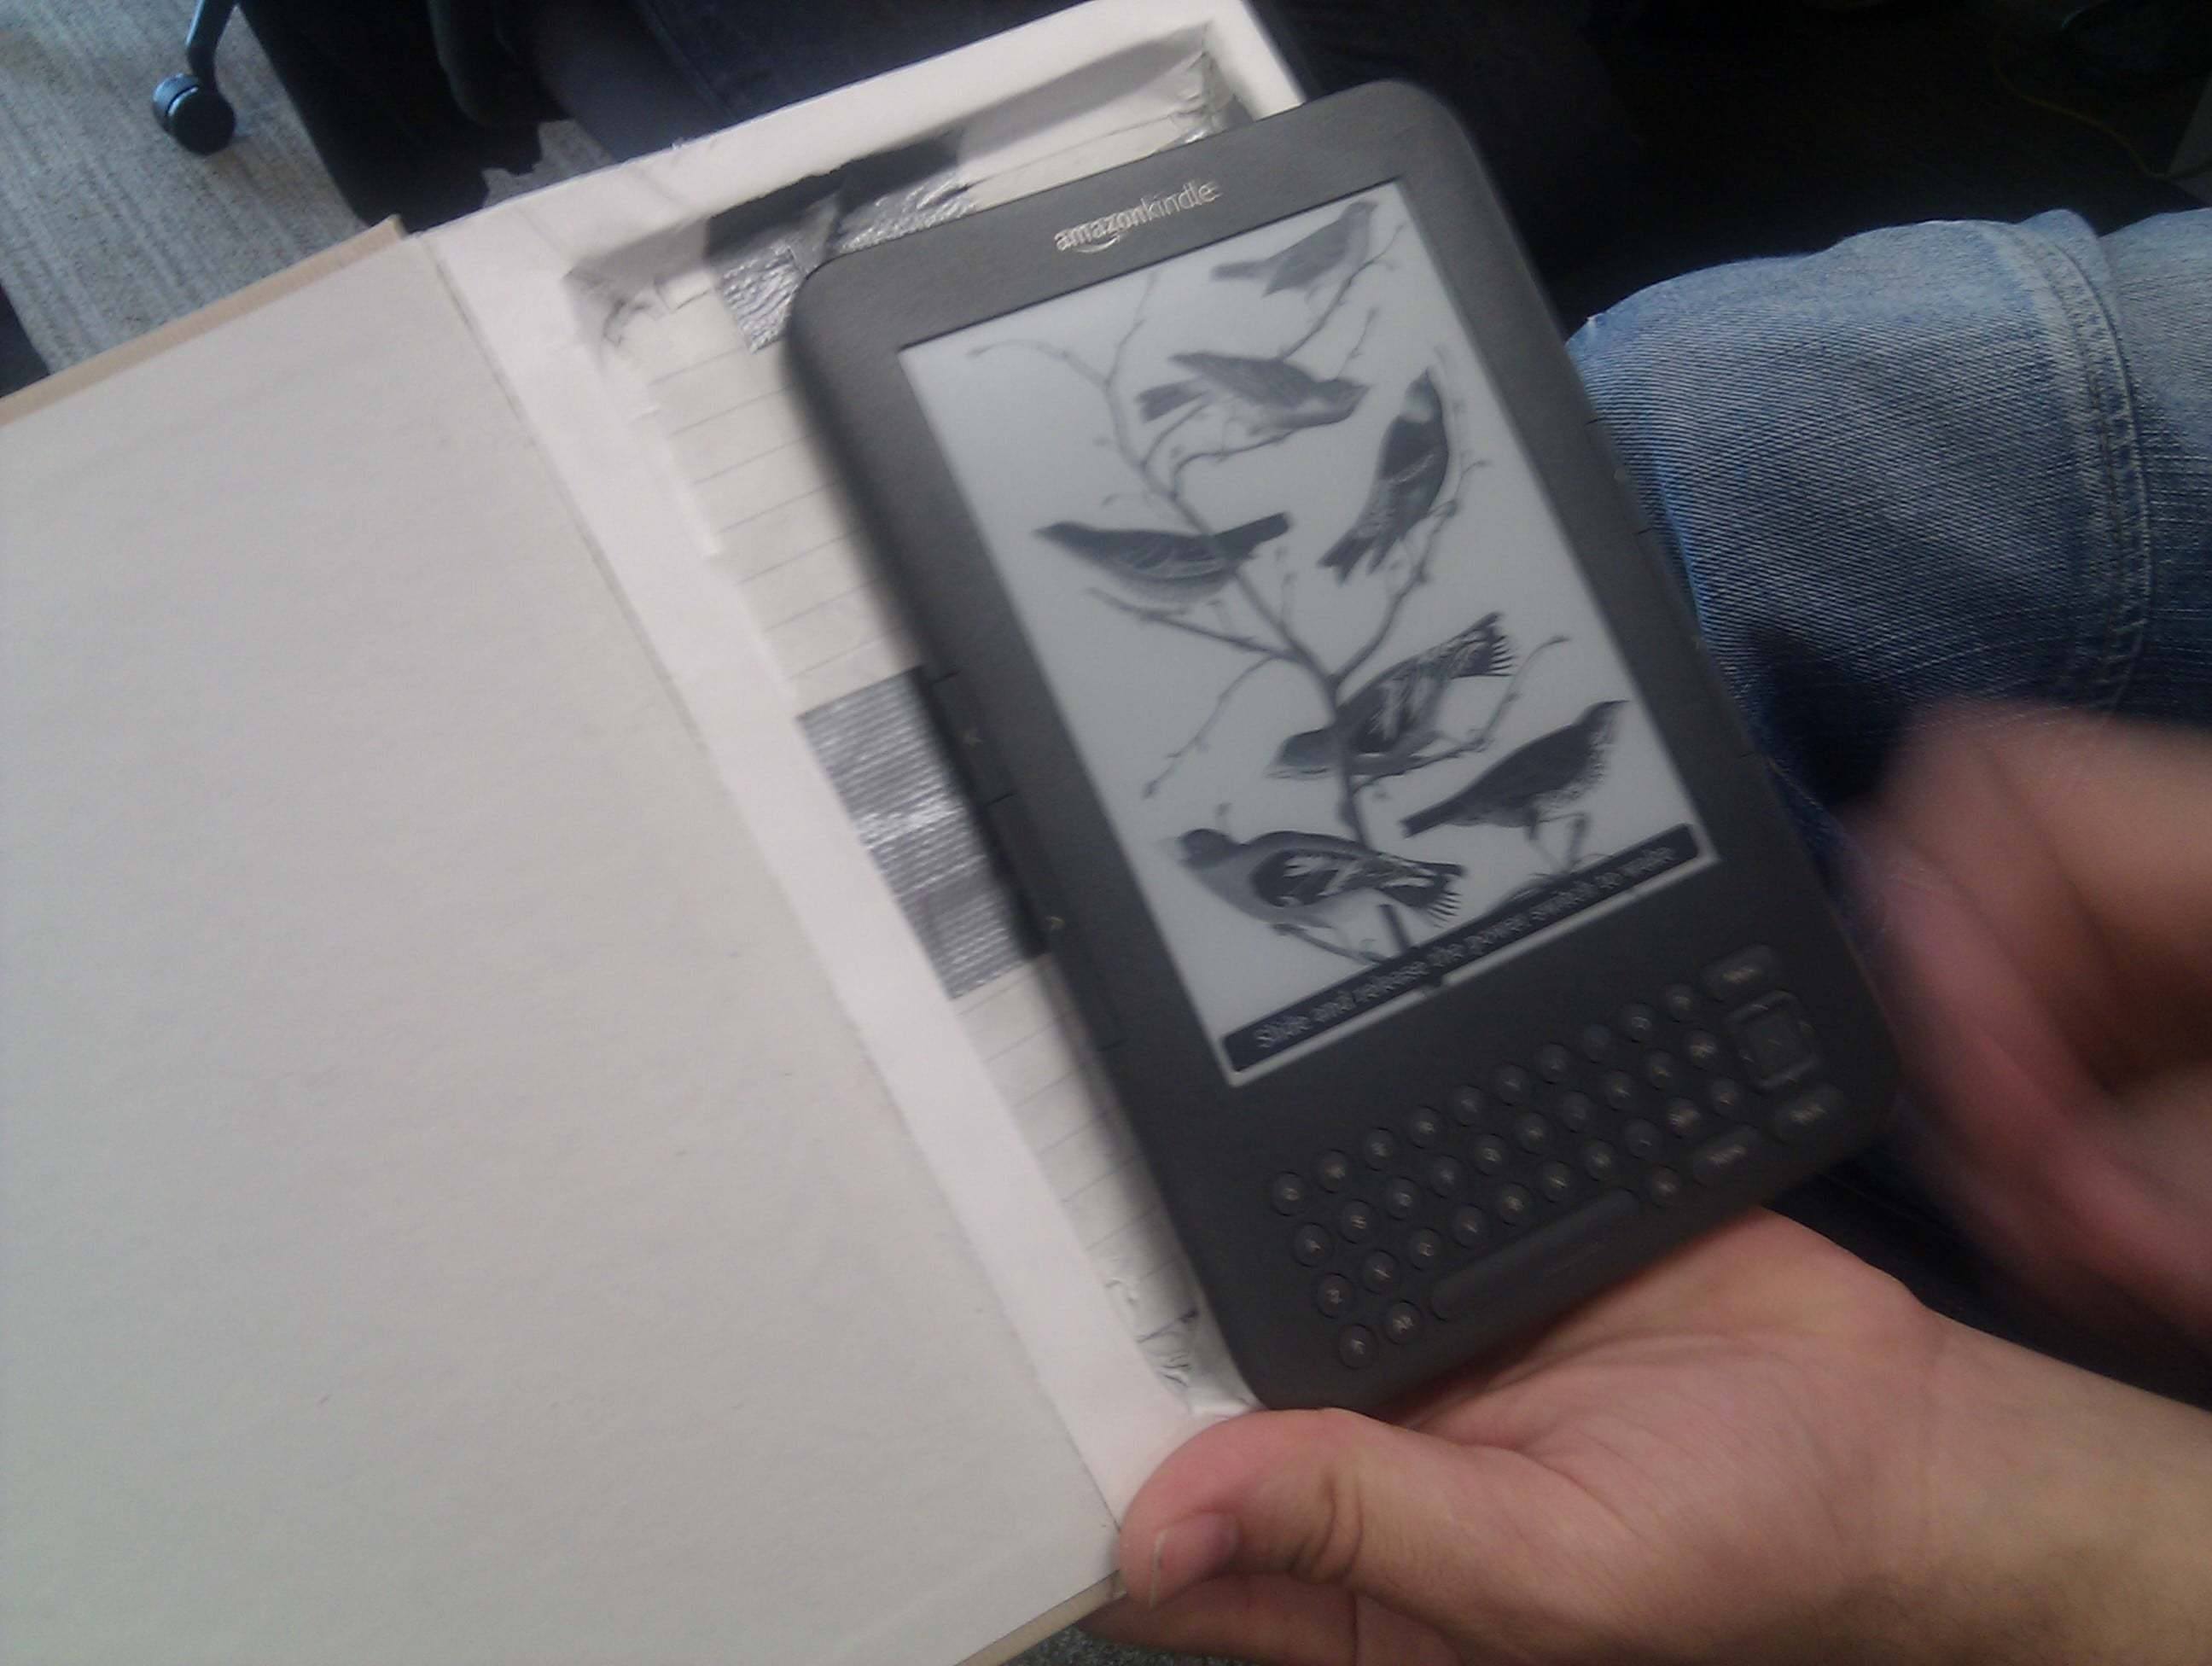 A Kindle hidden in a hollowed out paper book.